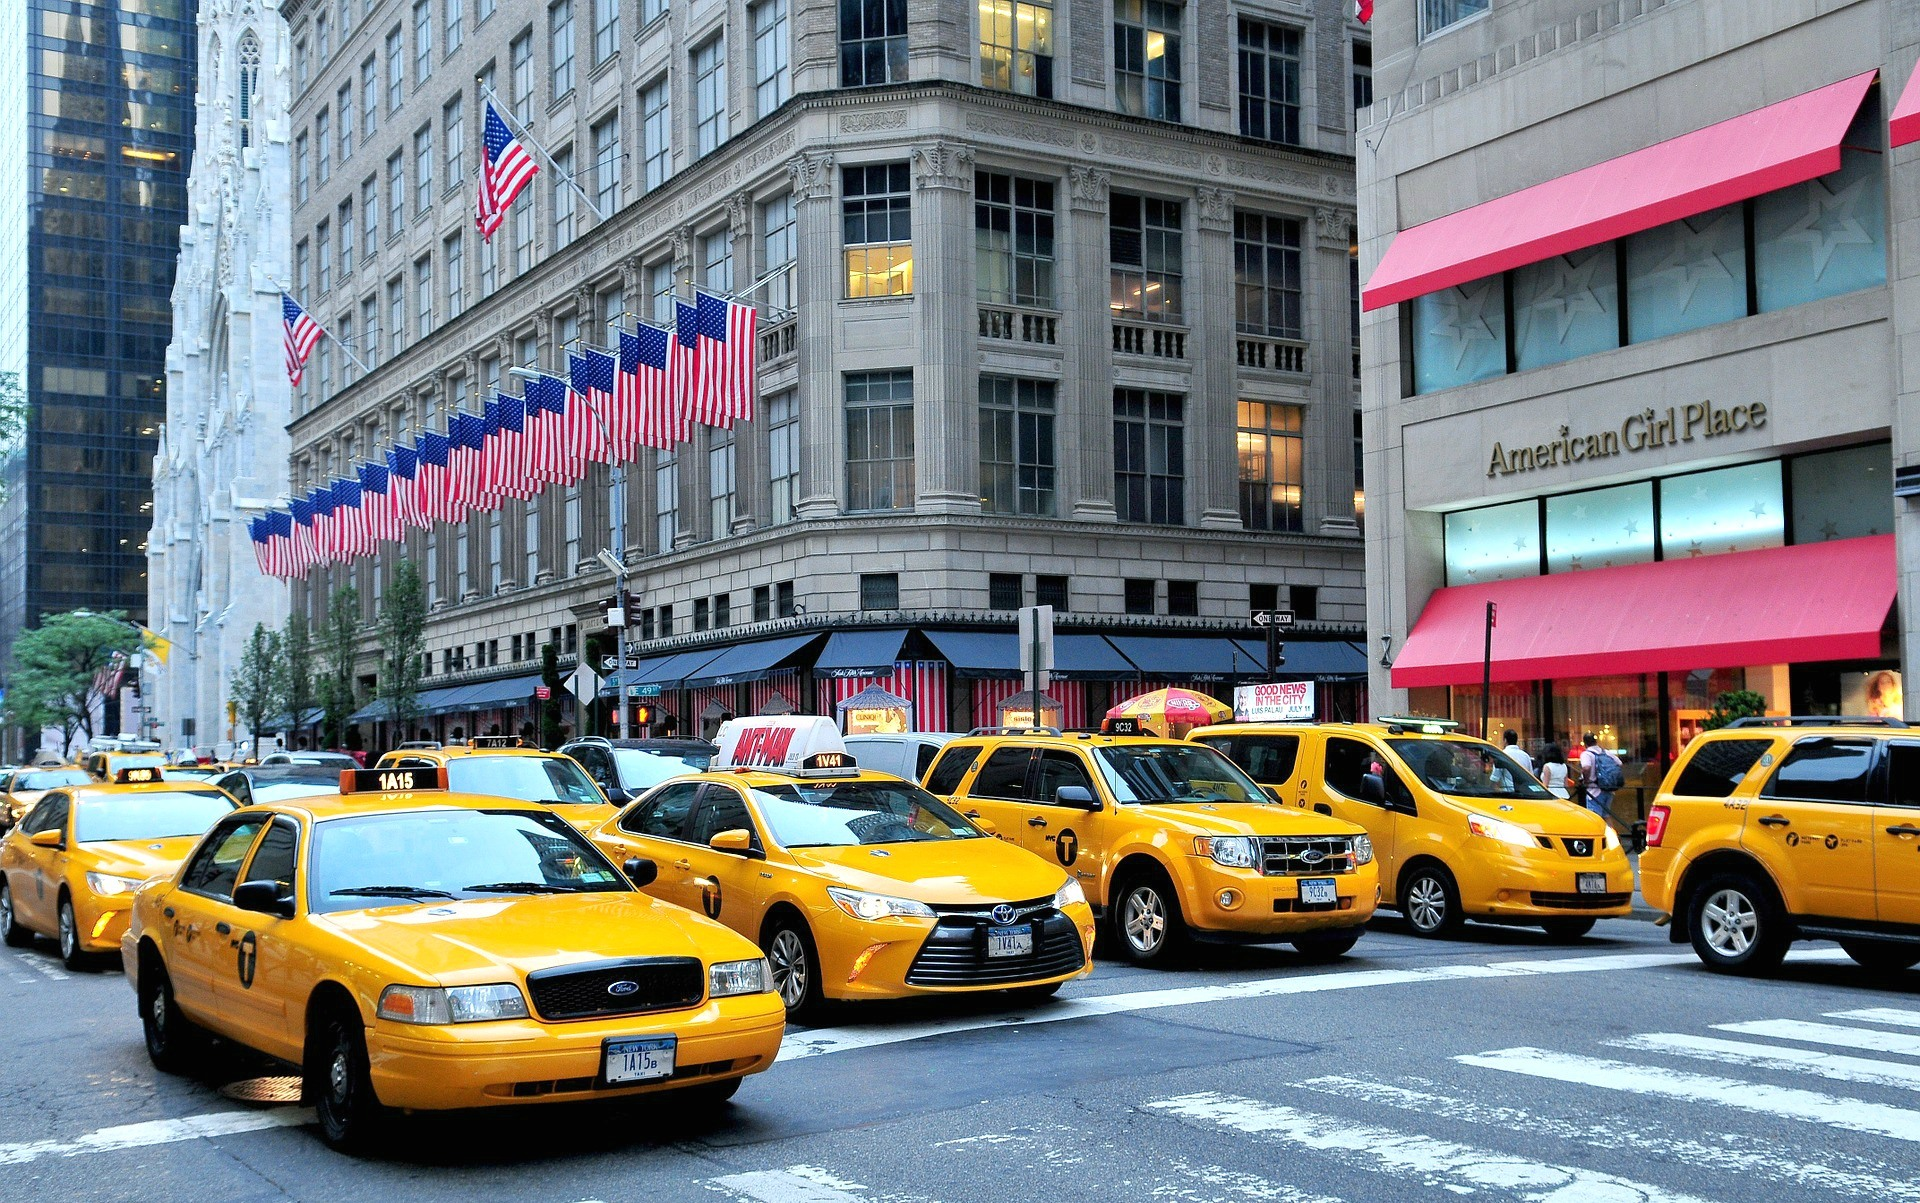 Fifth Avenue, NYC cabs